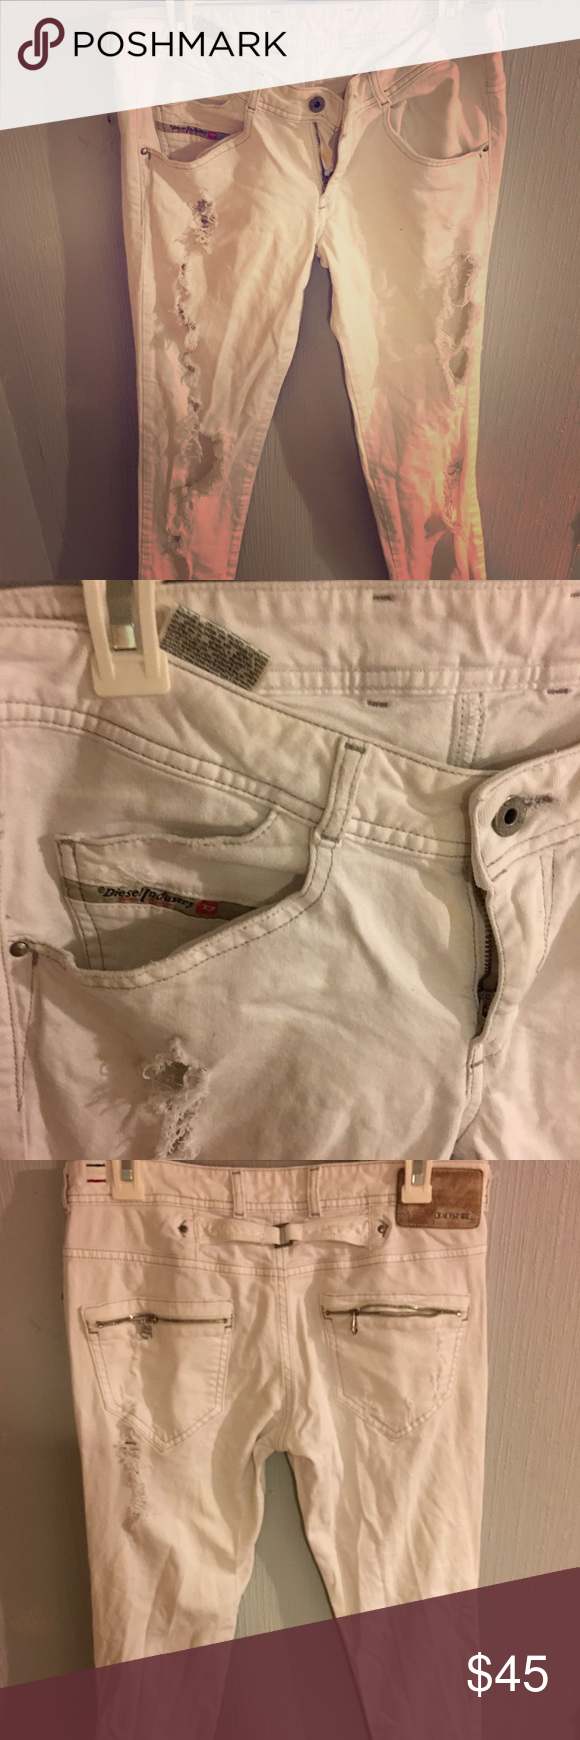 Diesel Destroyed Denim Clushy Diesel denim at its best. Clushy fits is a low rise skinny jean with yoke back and zipper pocket details. This pair has been with me for years so it does have wear to it. Minor stain in the inside zipper but can't be seen when you zipper it up. Letting it go for a fraction. Diesel Pants Skinny